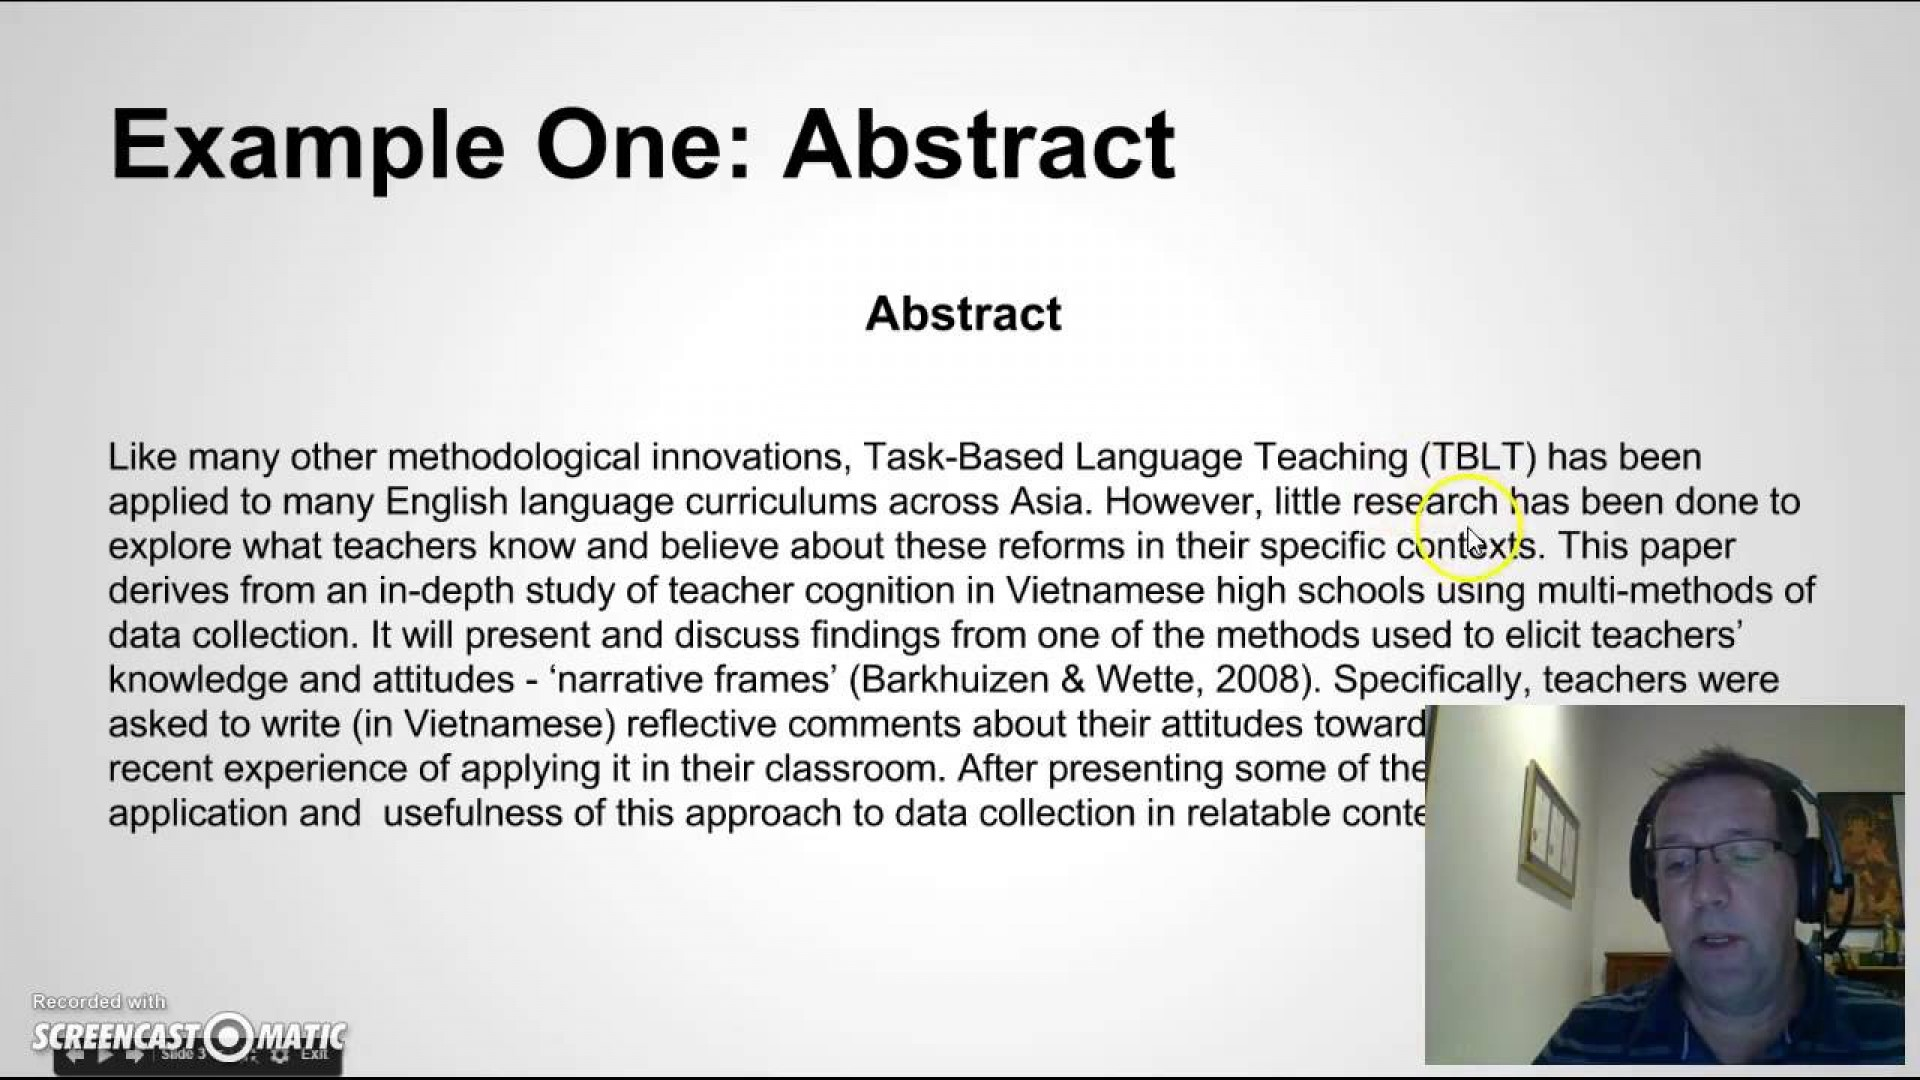 002 How To Write Abstract For Research Paper Ppt Stirring 1920